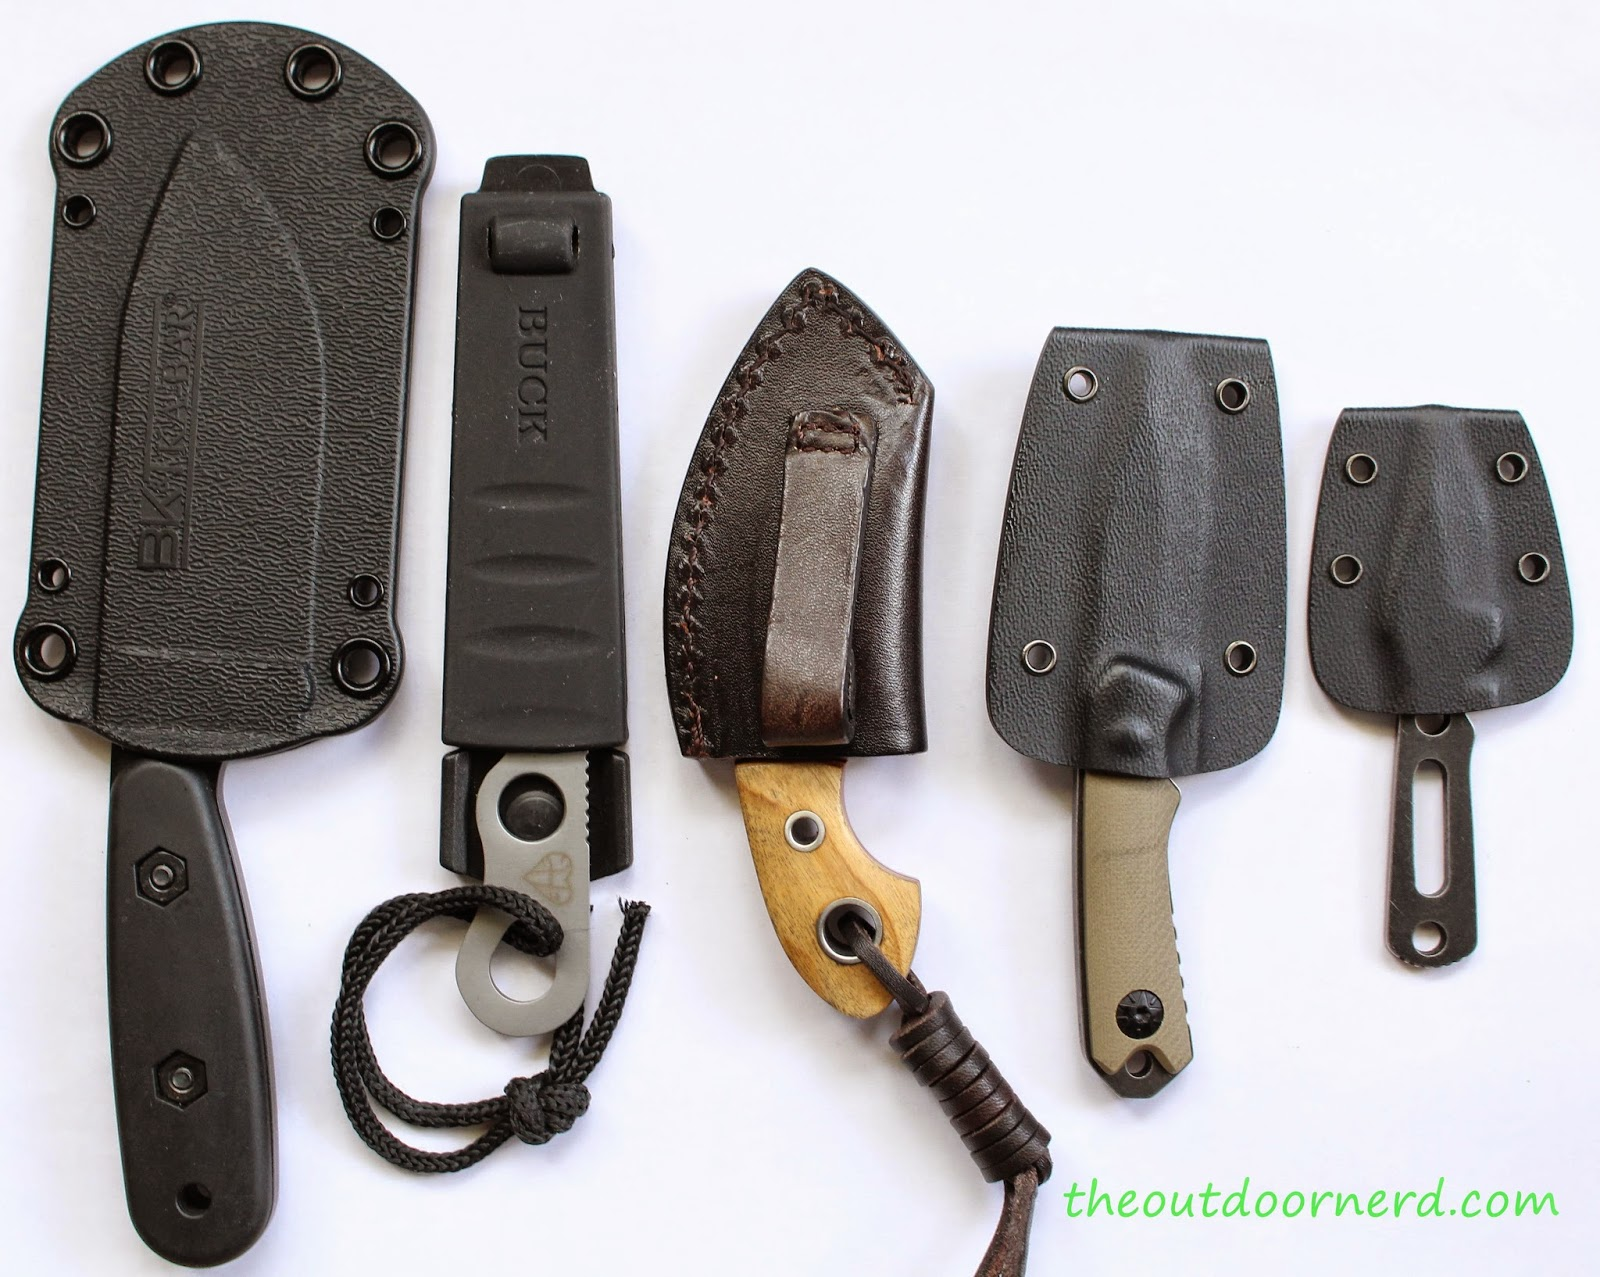 From Left: Ka-Bar Becker BK14, Buck Smidgen, Boker Gnome, MTech MT-20-30, Boker Magnum Arrowhead